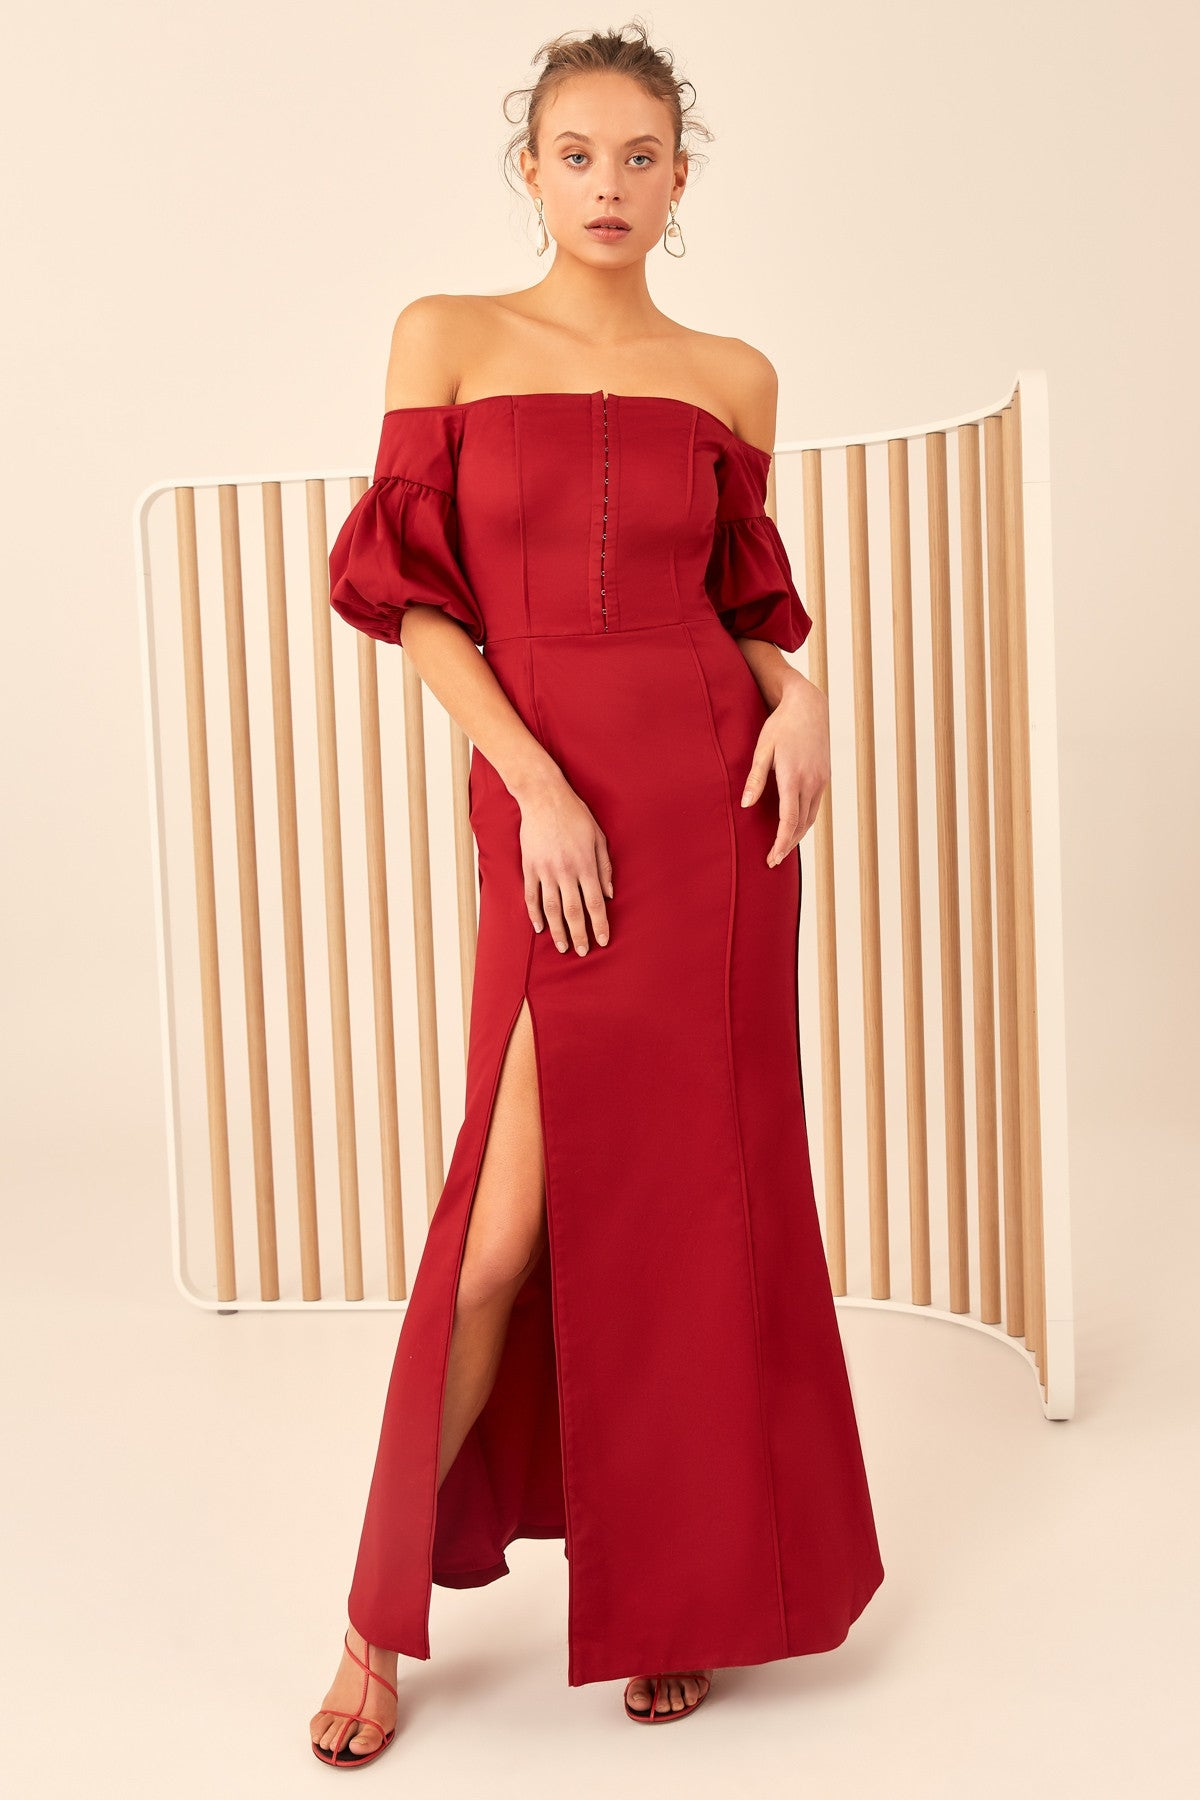 ONLY WITH YOU SHORT SLEEVE GOWN cherry